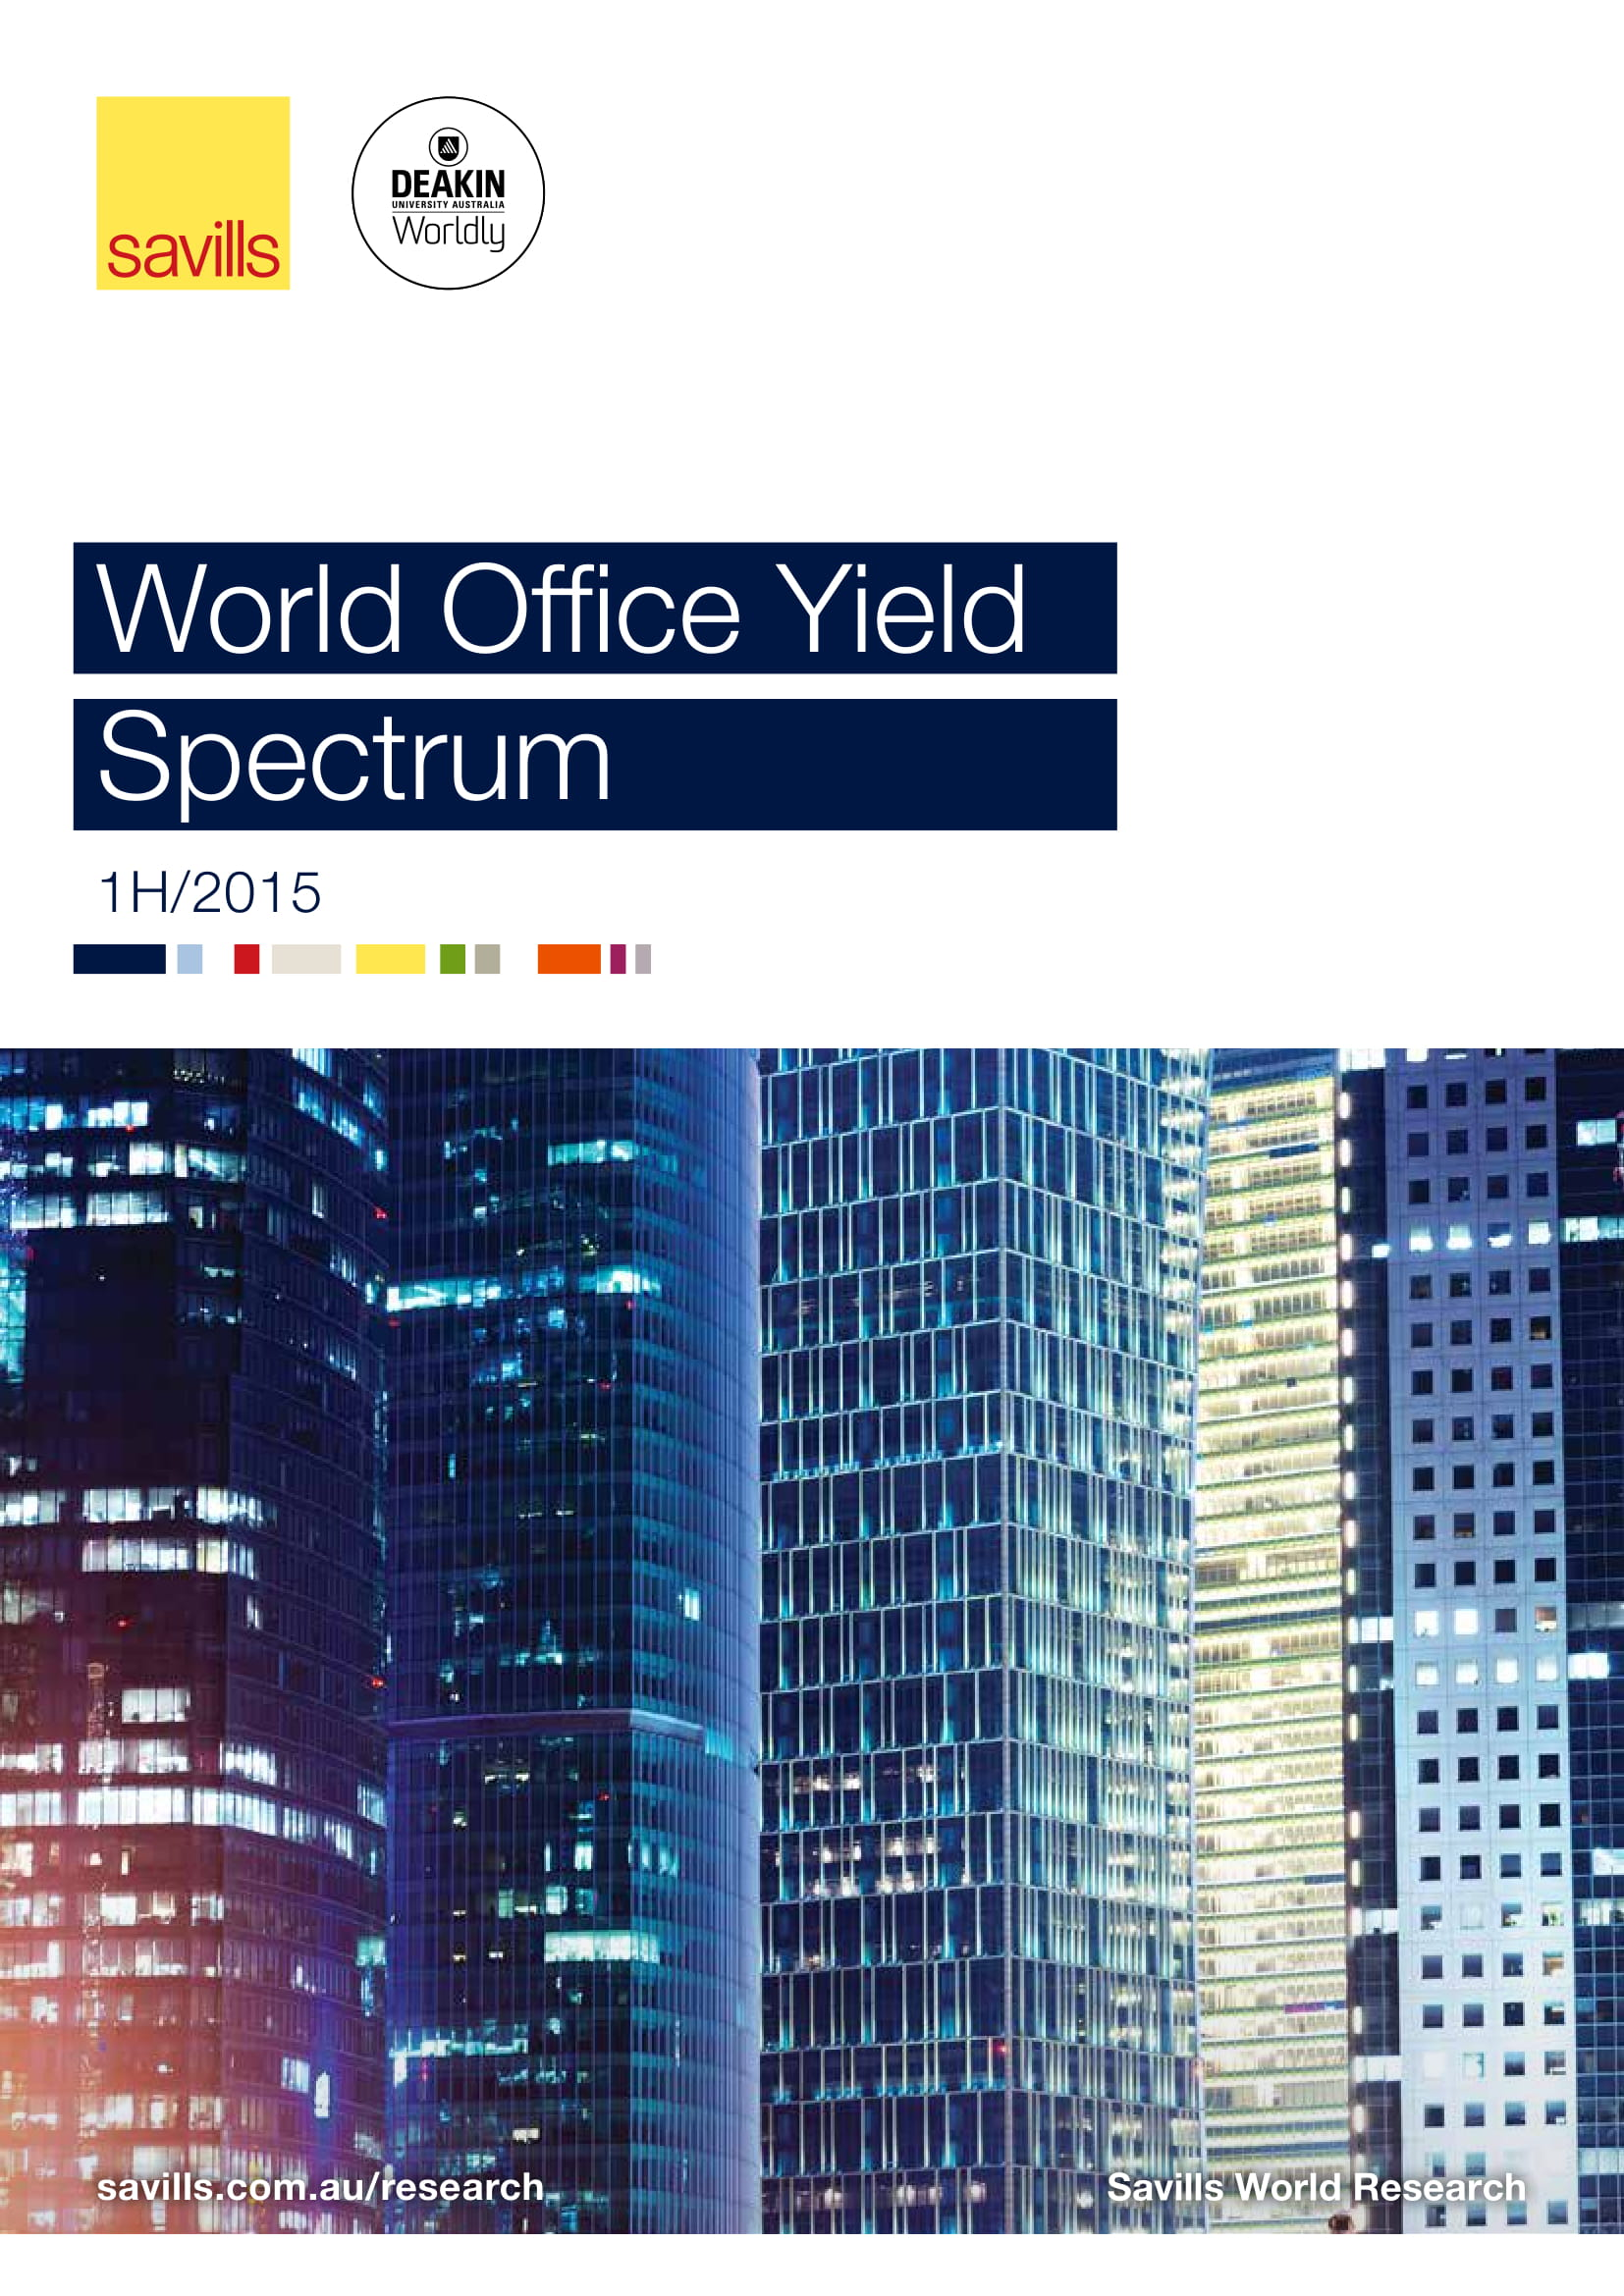 World Office Yield Spectrum 1H 2015